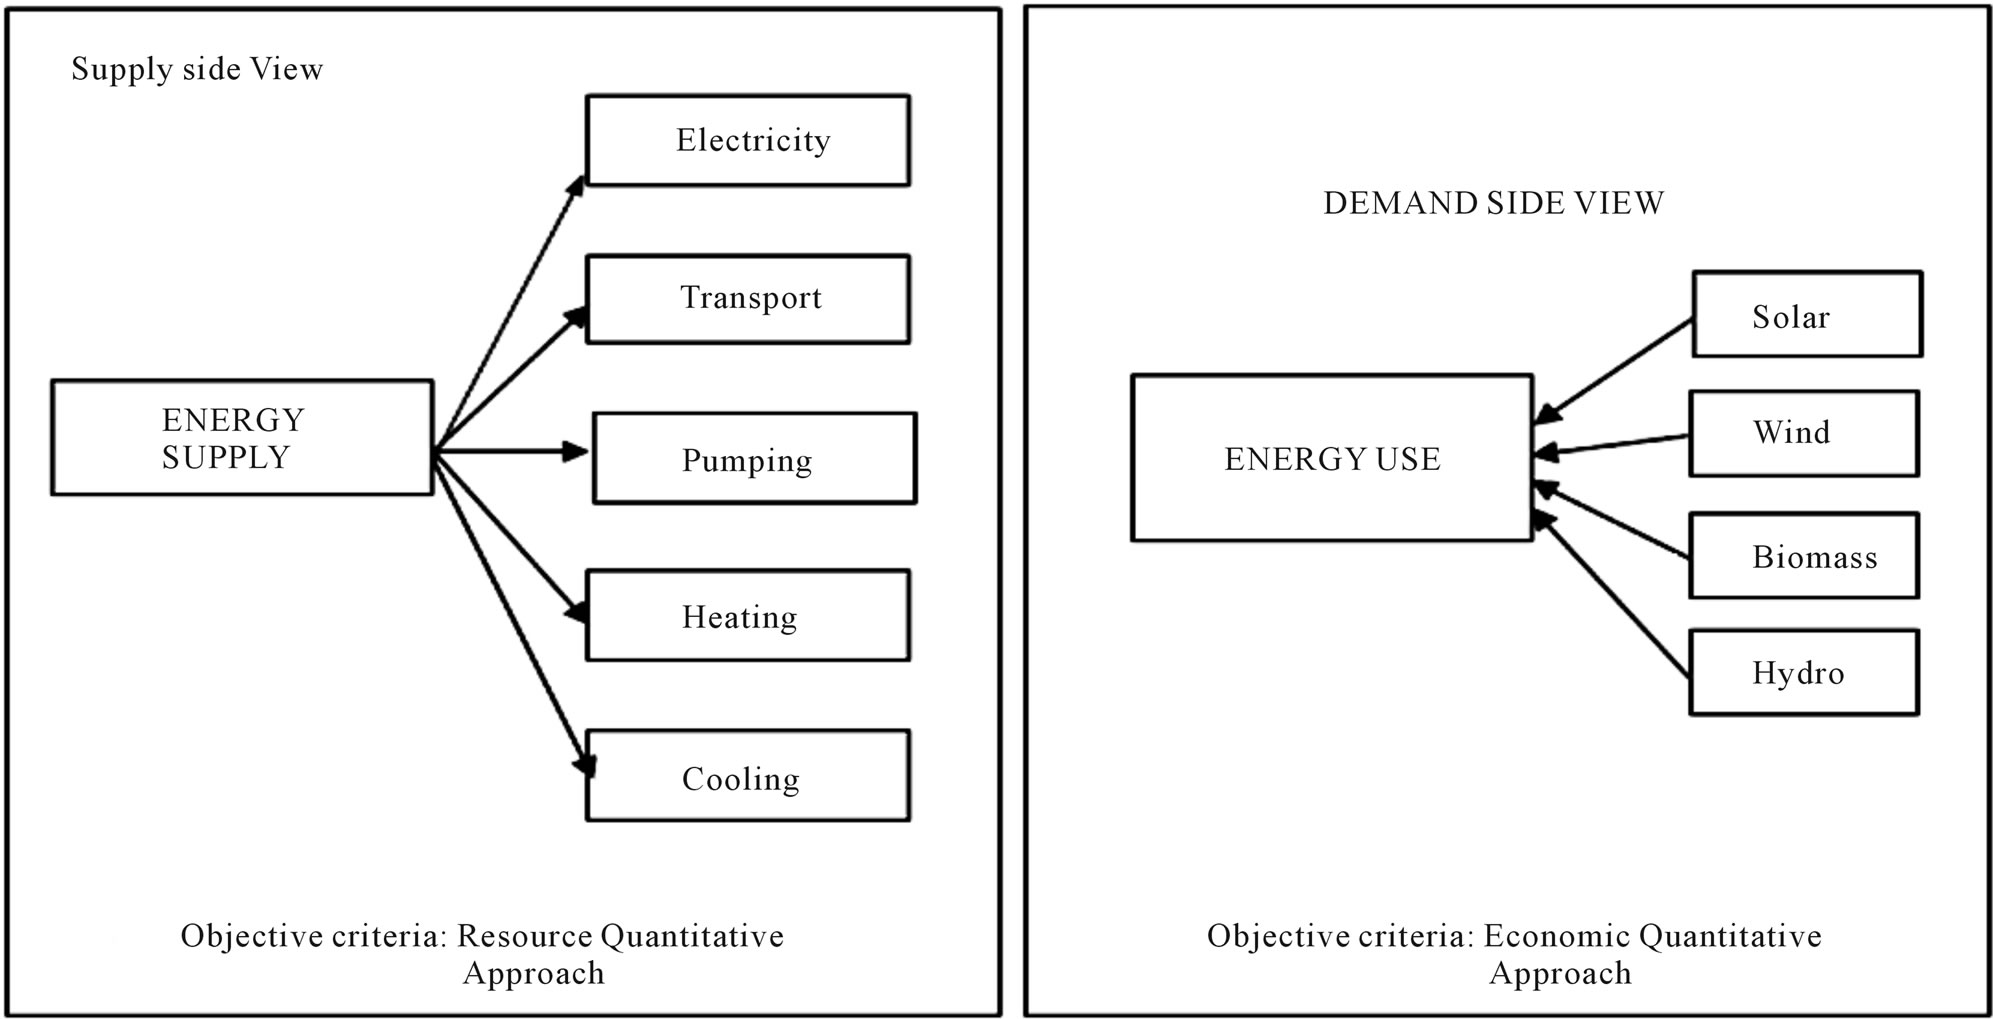 Biomass Energy Resources Utilisation And Waste Management How Electricity Generation From Works Supply Side Demand Approach For 23